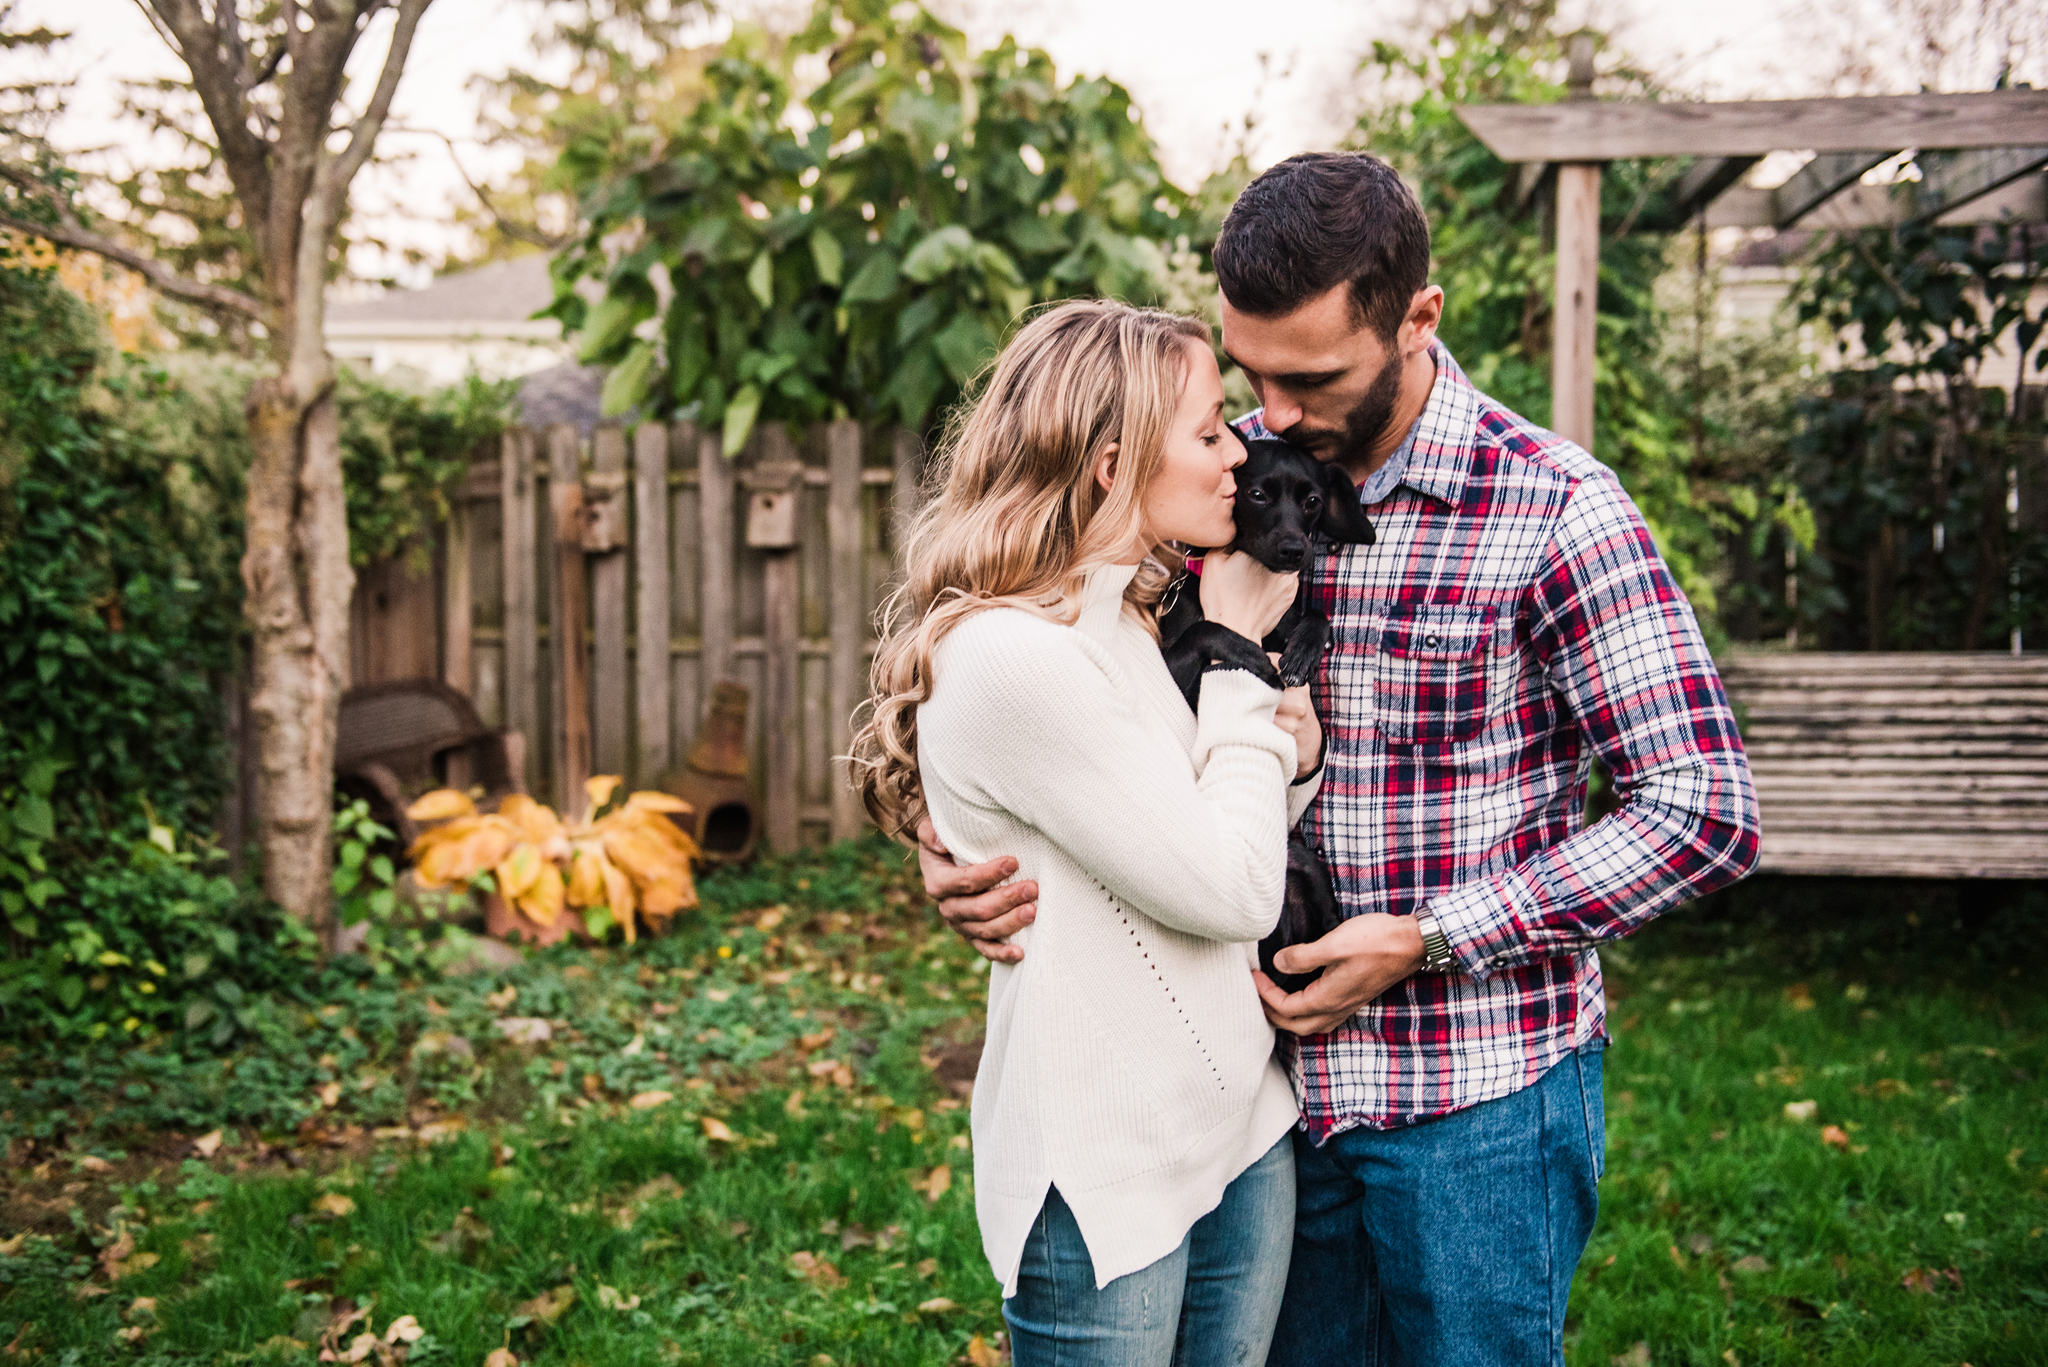 Village_of_Fairport_Rochester_Engagement_Session_JILL_STUDIO_Rochester_NY_Photographer_DSC_8912.jpg